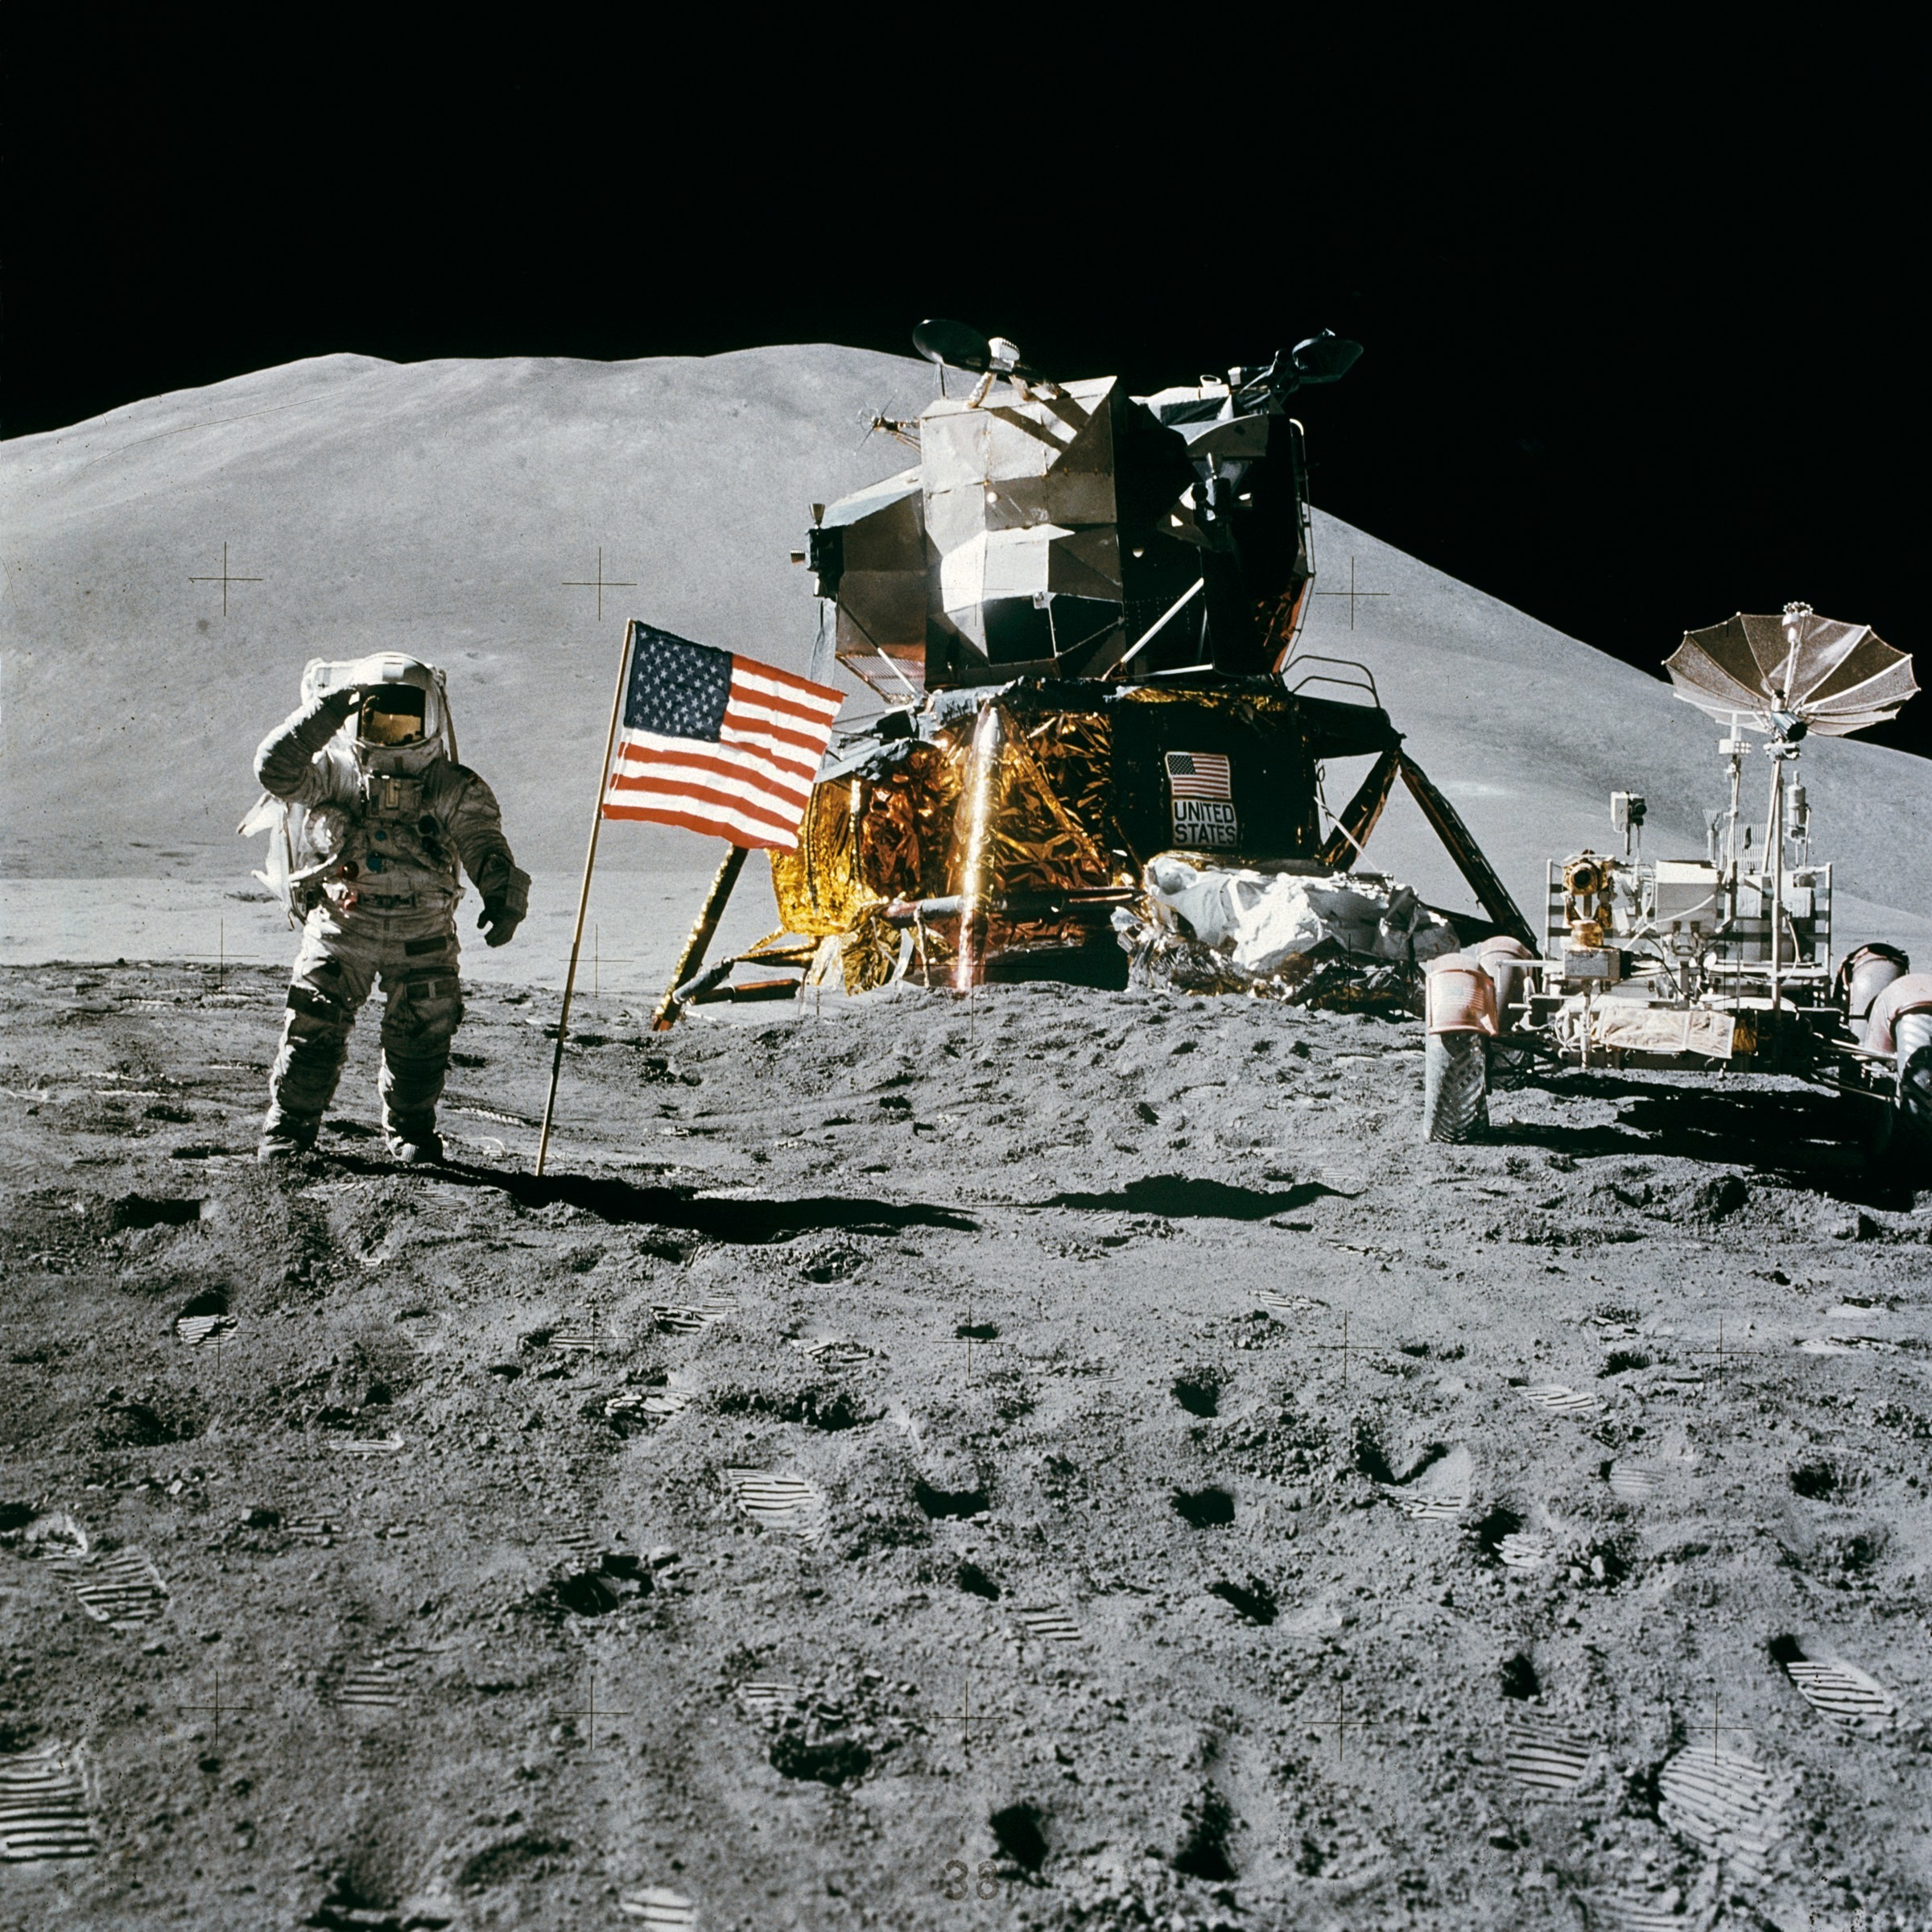 a picture of the moon landing - with the lunar module, american flag and James Irwin saluting during the Apollo 15 mission.